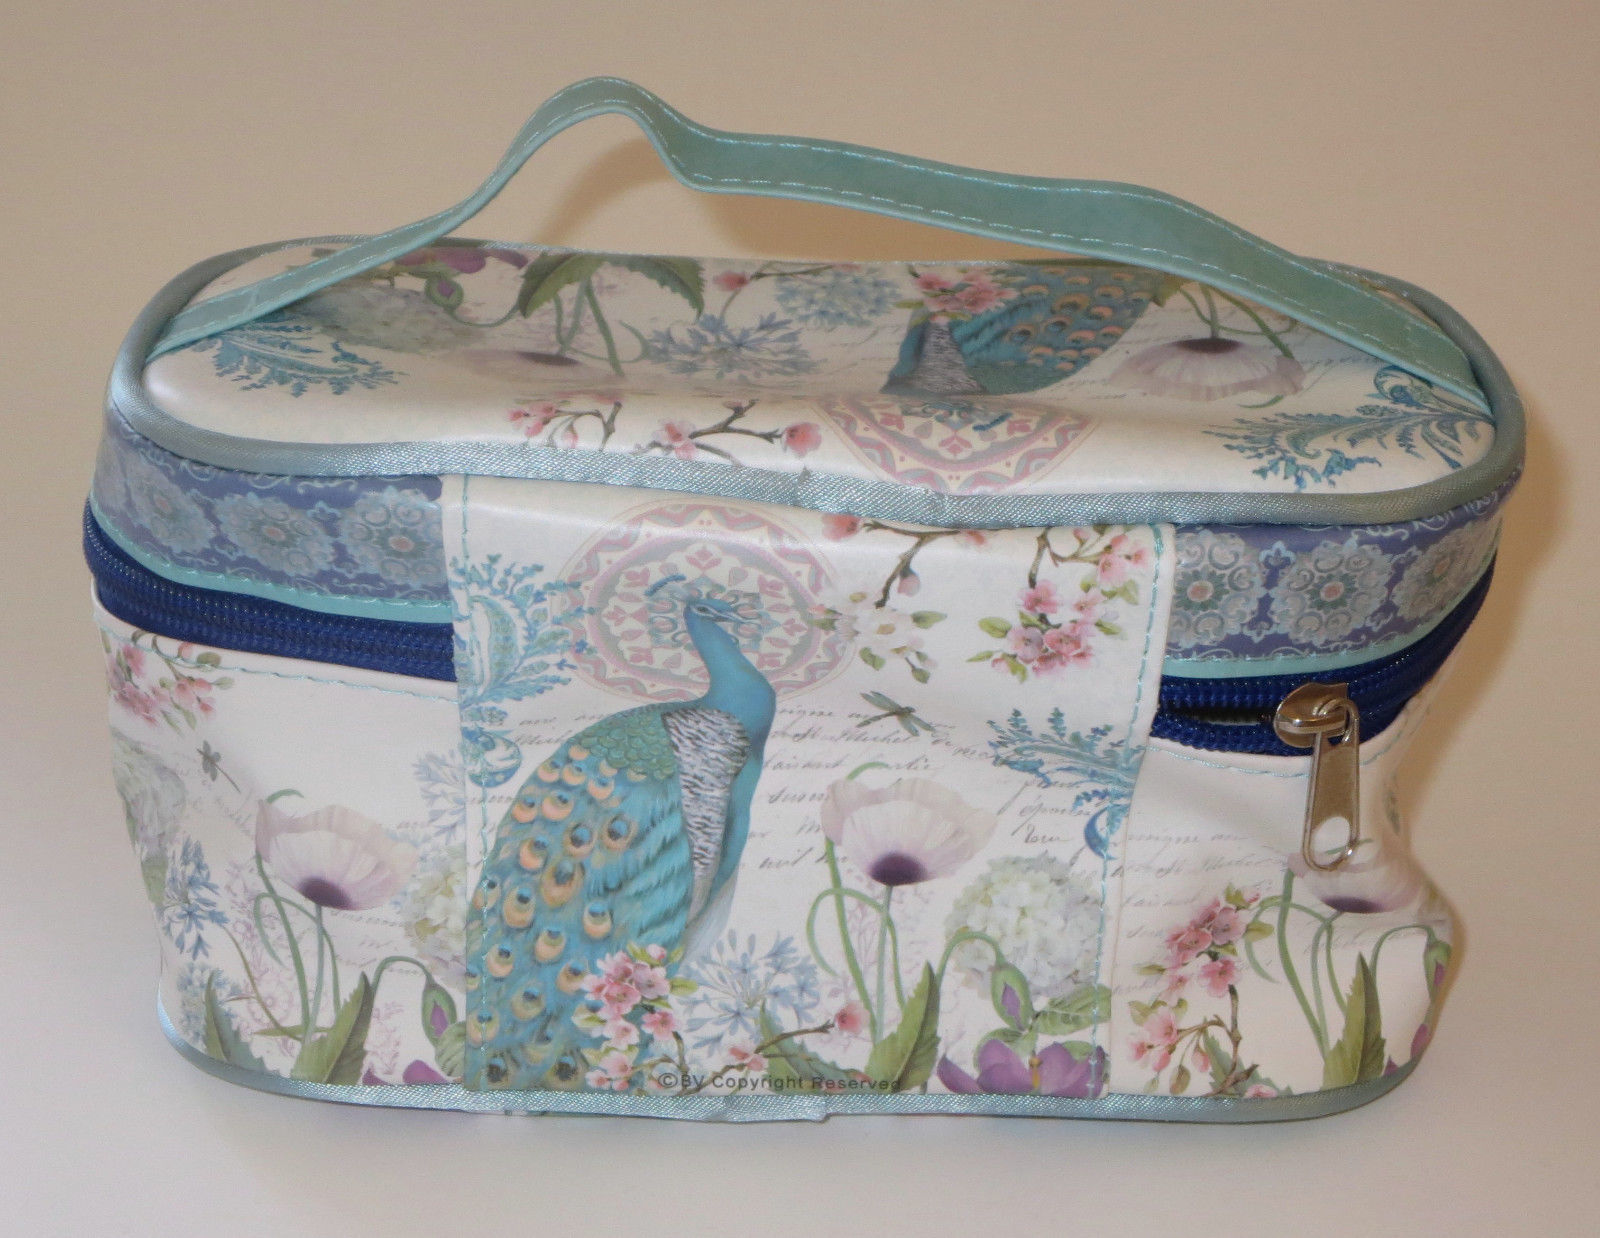 "Peacock Makeup Bag Cosmetic 8"" Blue White Hydrangeas Cherry Blossom Flowers New"